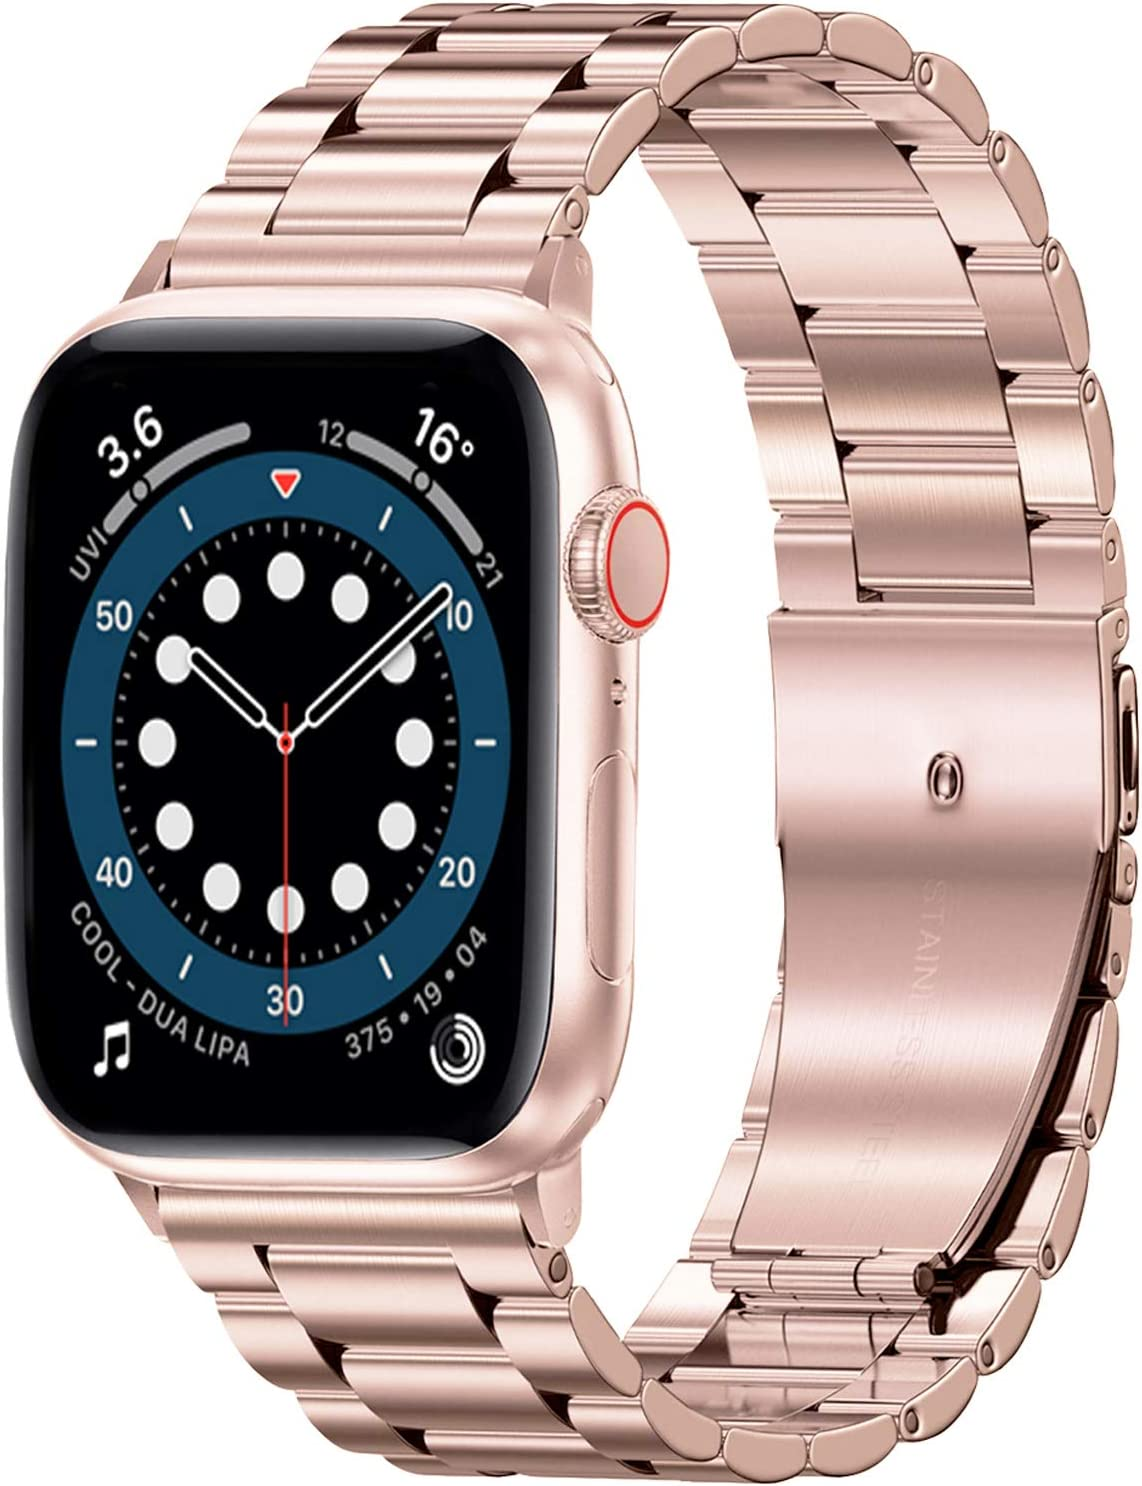 Shangpule Compatible with Apple Watch Band 42mm 44mm 38mm 40mm ,Stainless Steel Metal Wristband Men Women for iWatch SE & Series 6/5/4/3/2/1 (42MM/44MM, Rose Gold)